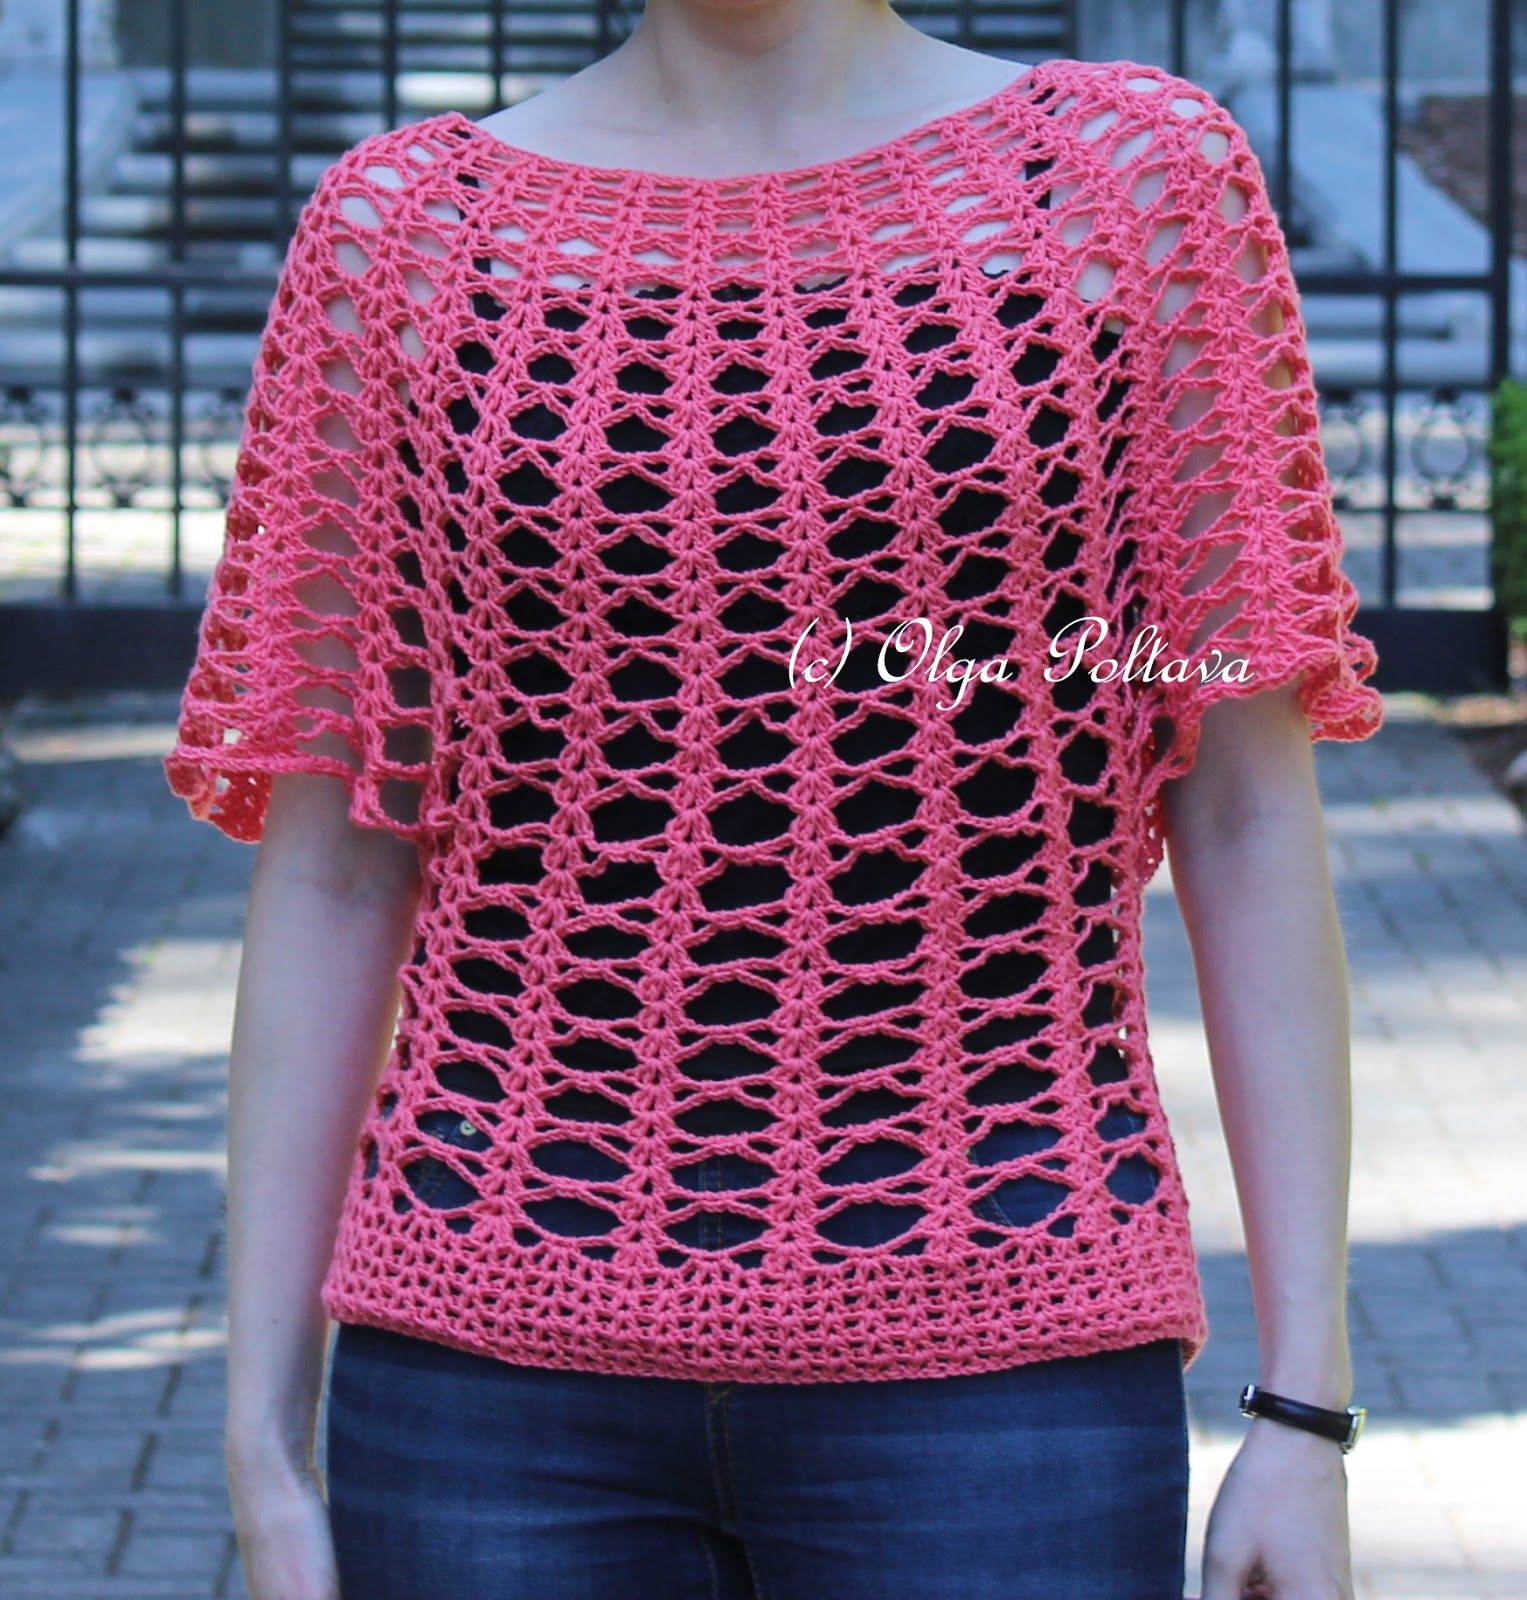 Best Crochet Pattern Maker : Lacy Crochet: Summer Lace Top, Cotton Fair by Premier Yarns